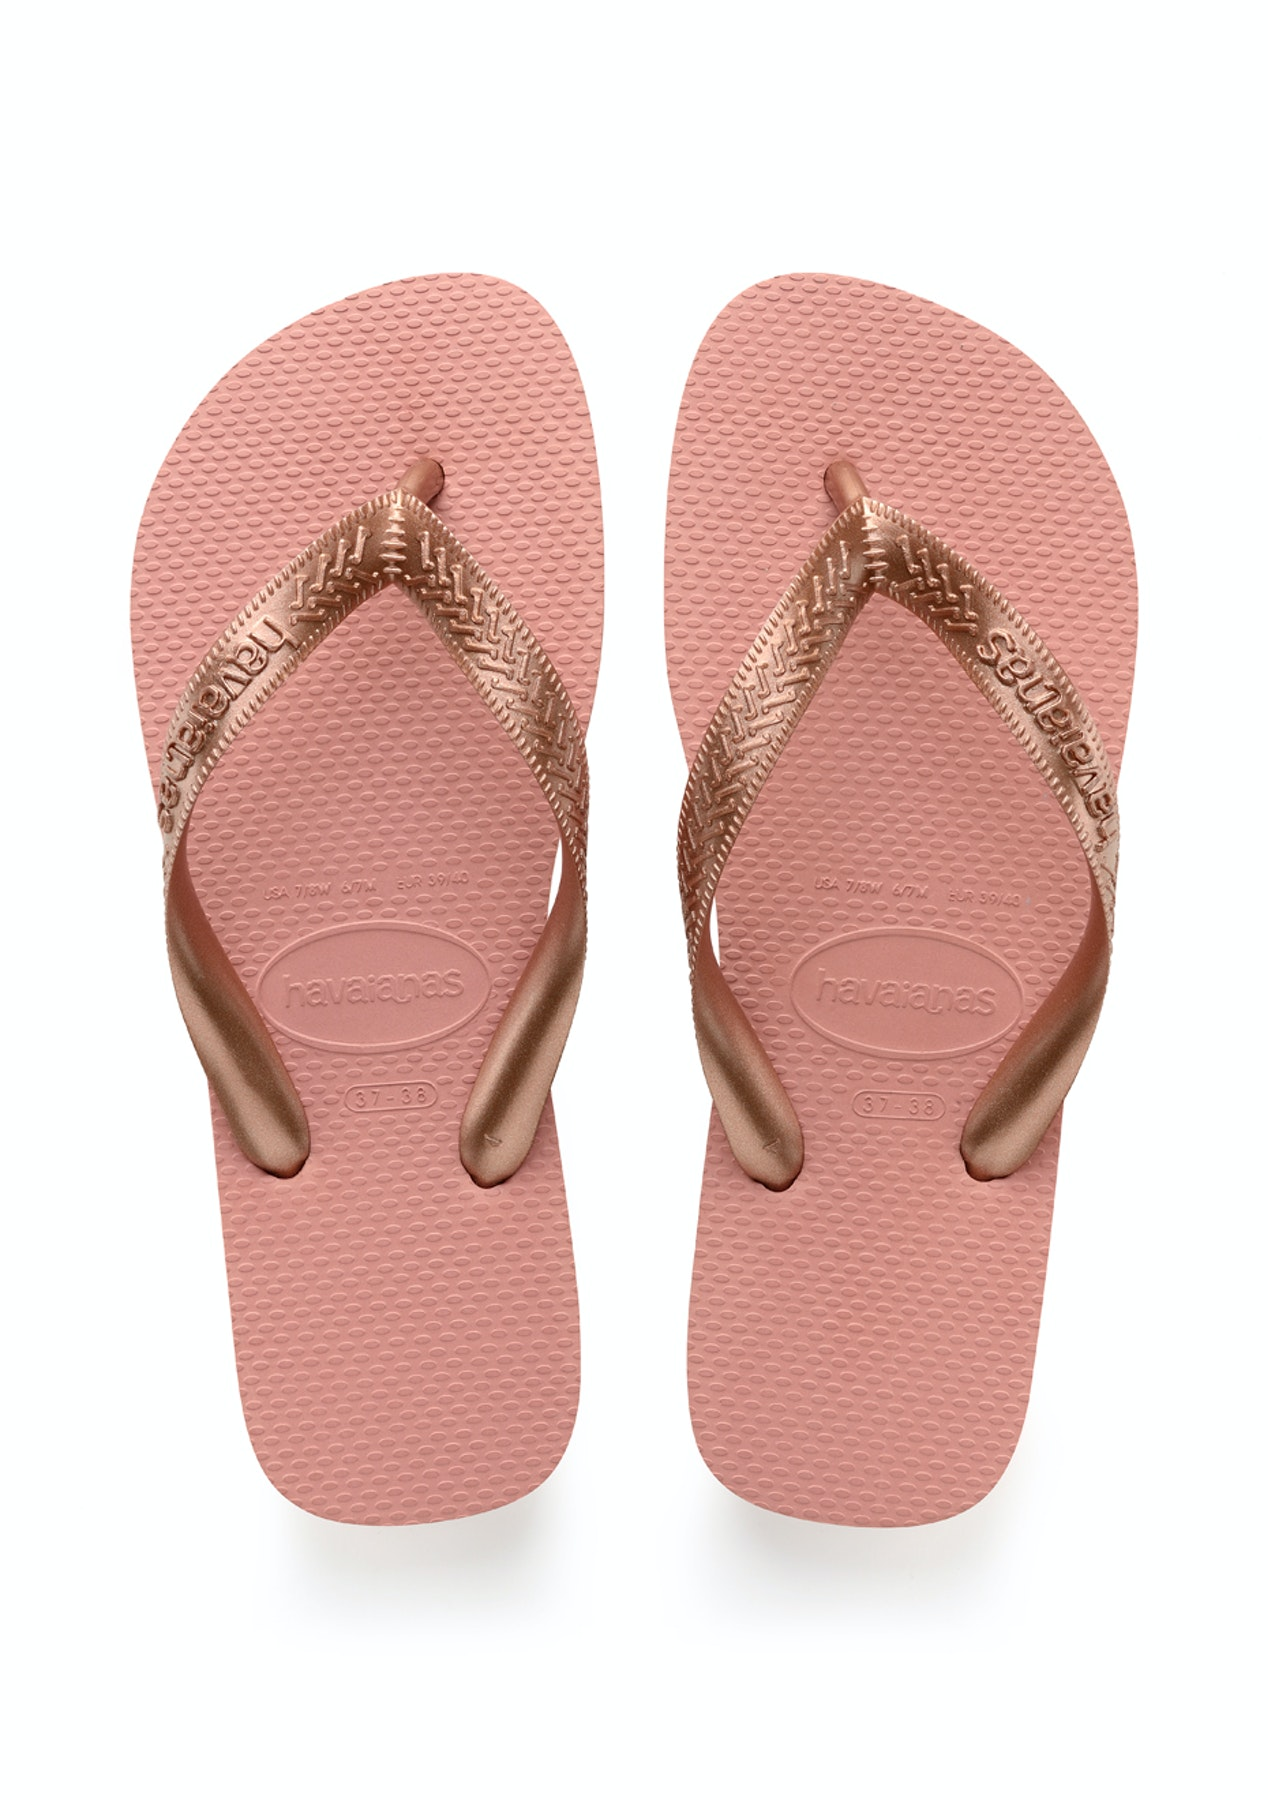 d32b5d4bd05 Havaianas - Top T 7939 - Rose Nude - Havaianas New Season - Onceit